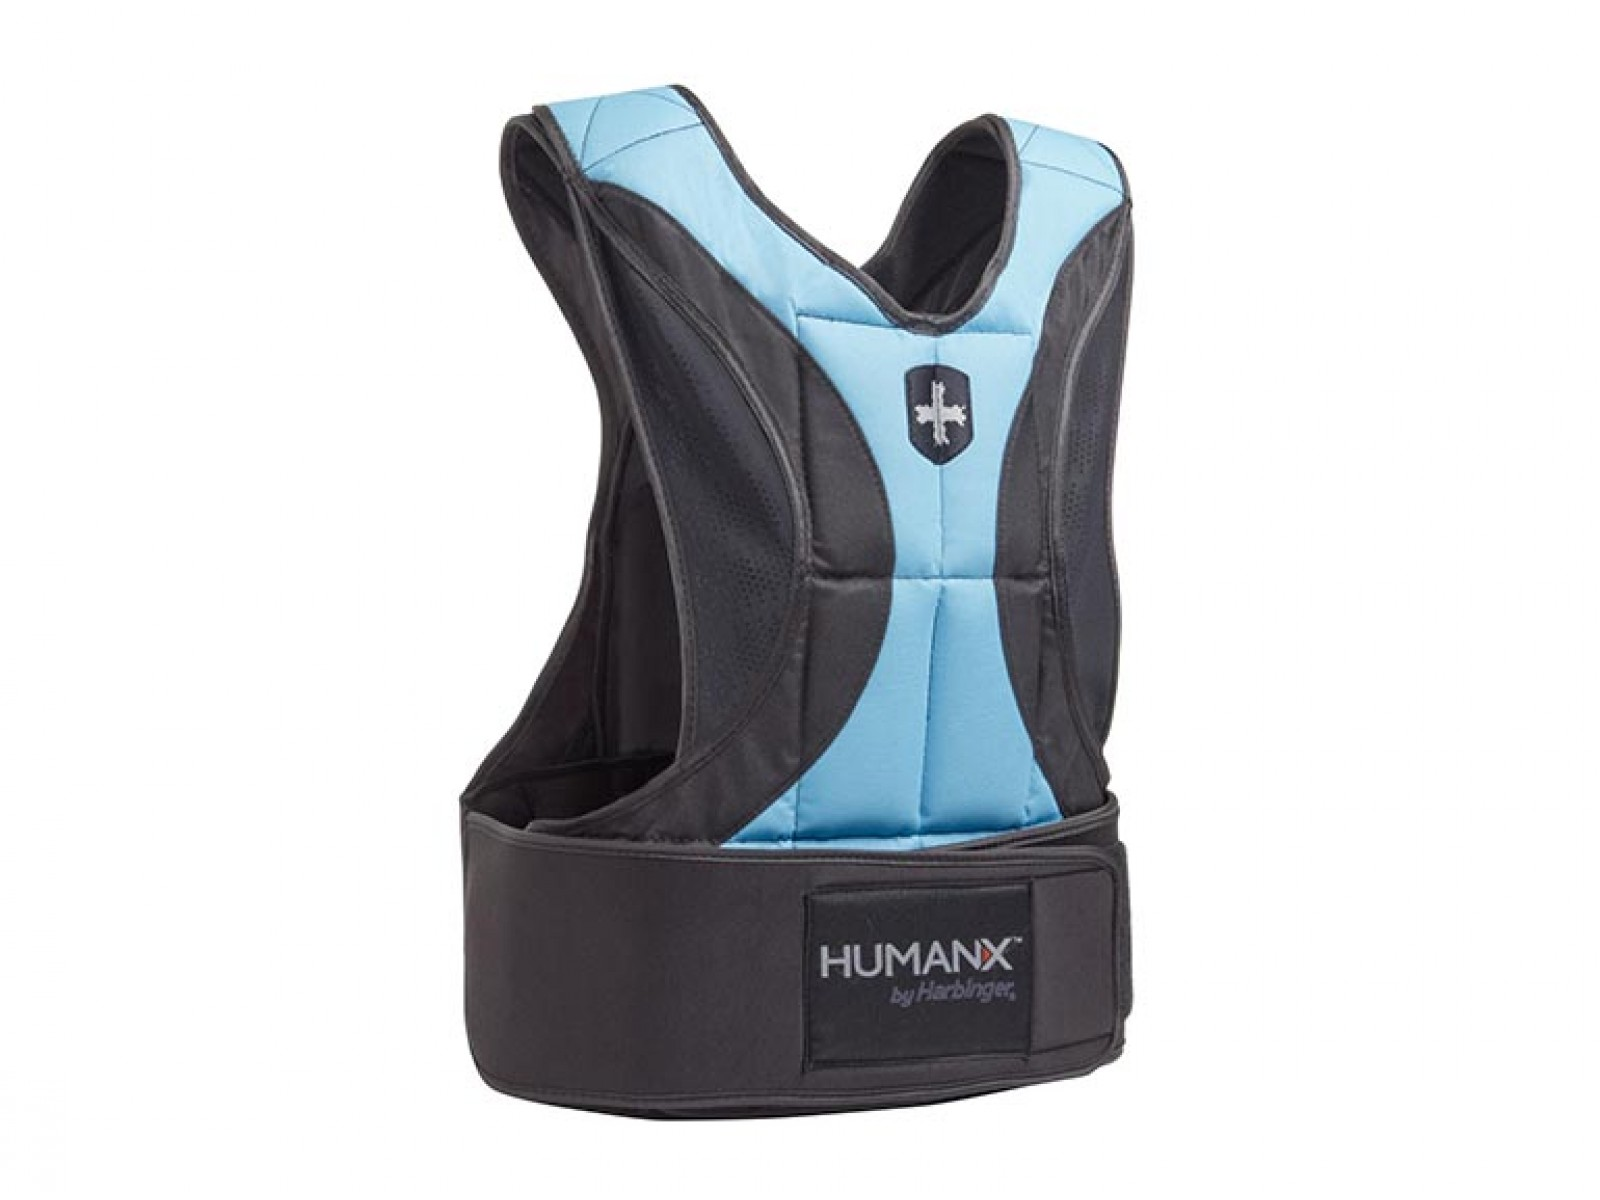 humanx 10lb womens weight vest by harbinger